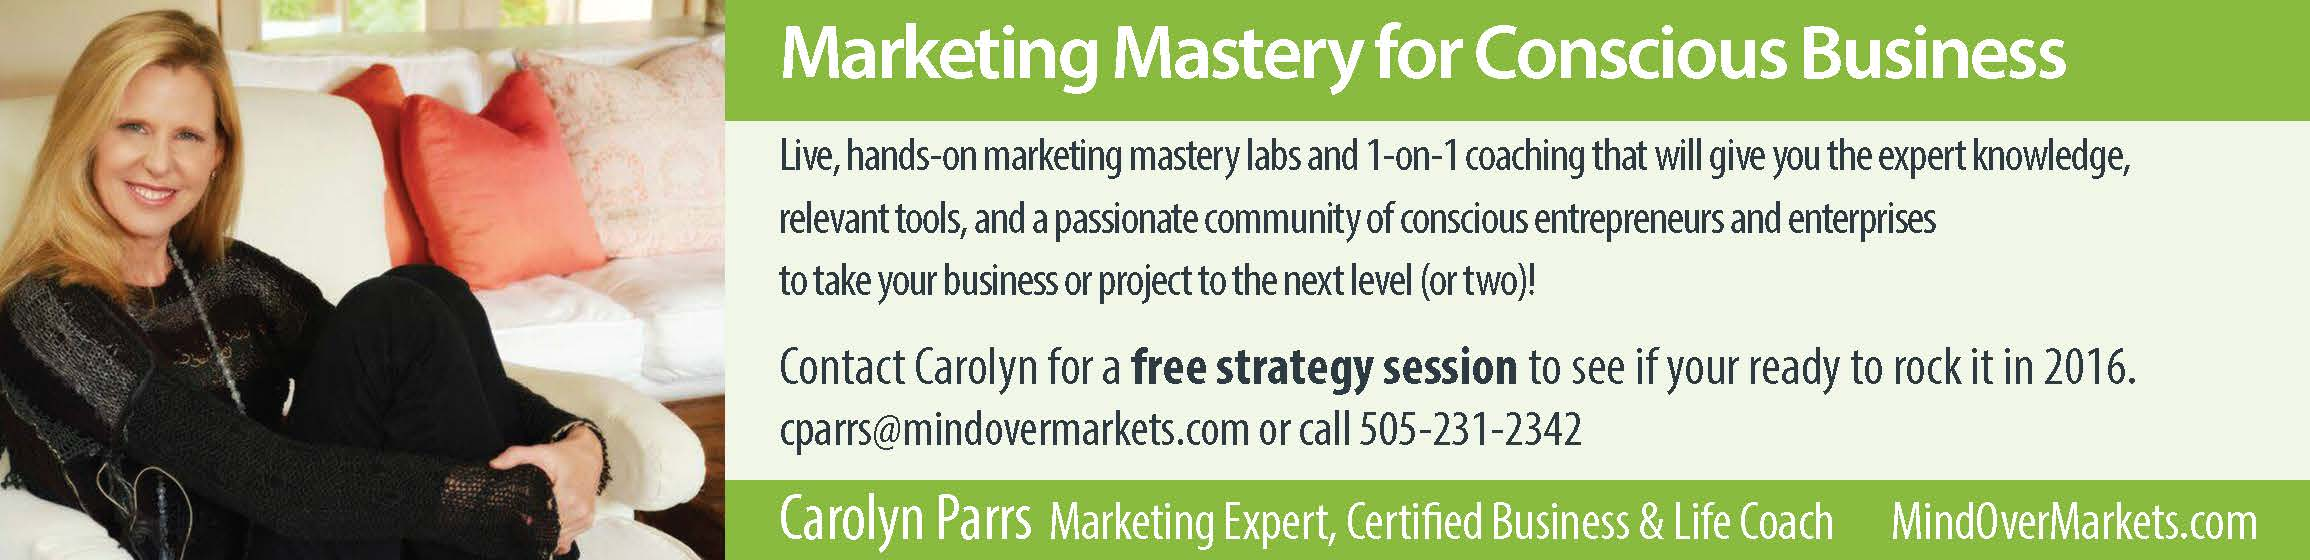 Marketing Mastery For Conscious Business with Carolyn Parrs, Mind Over Markets